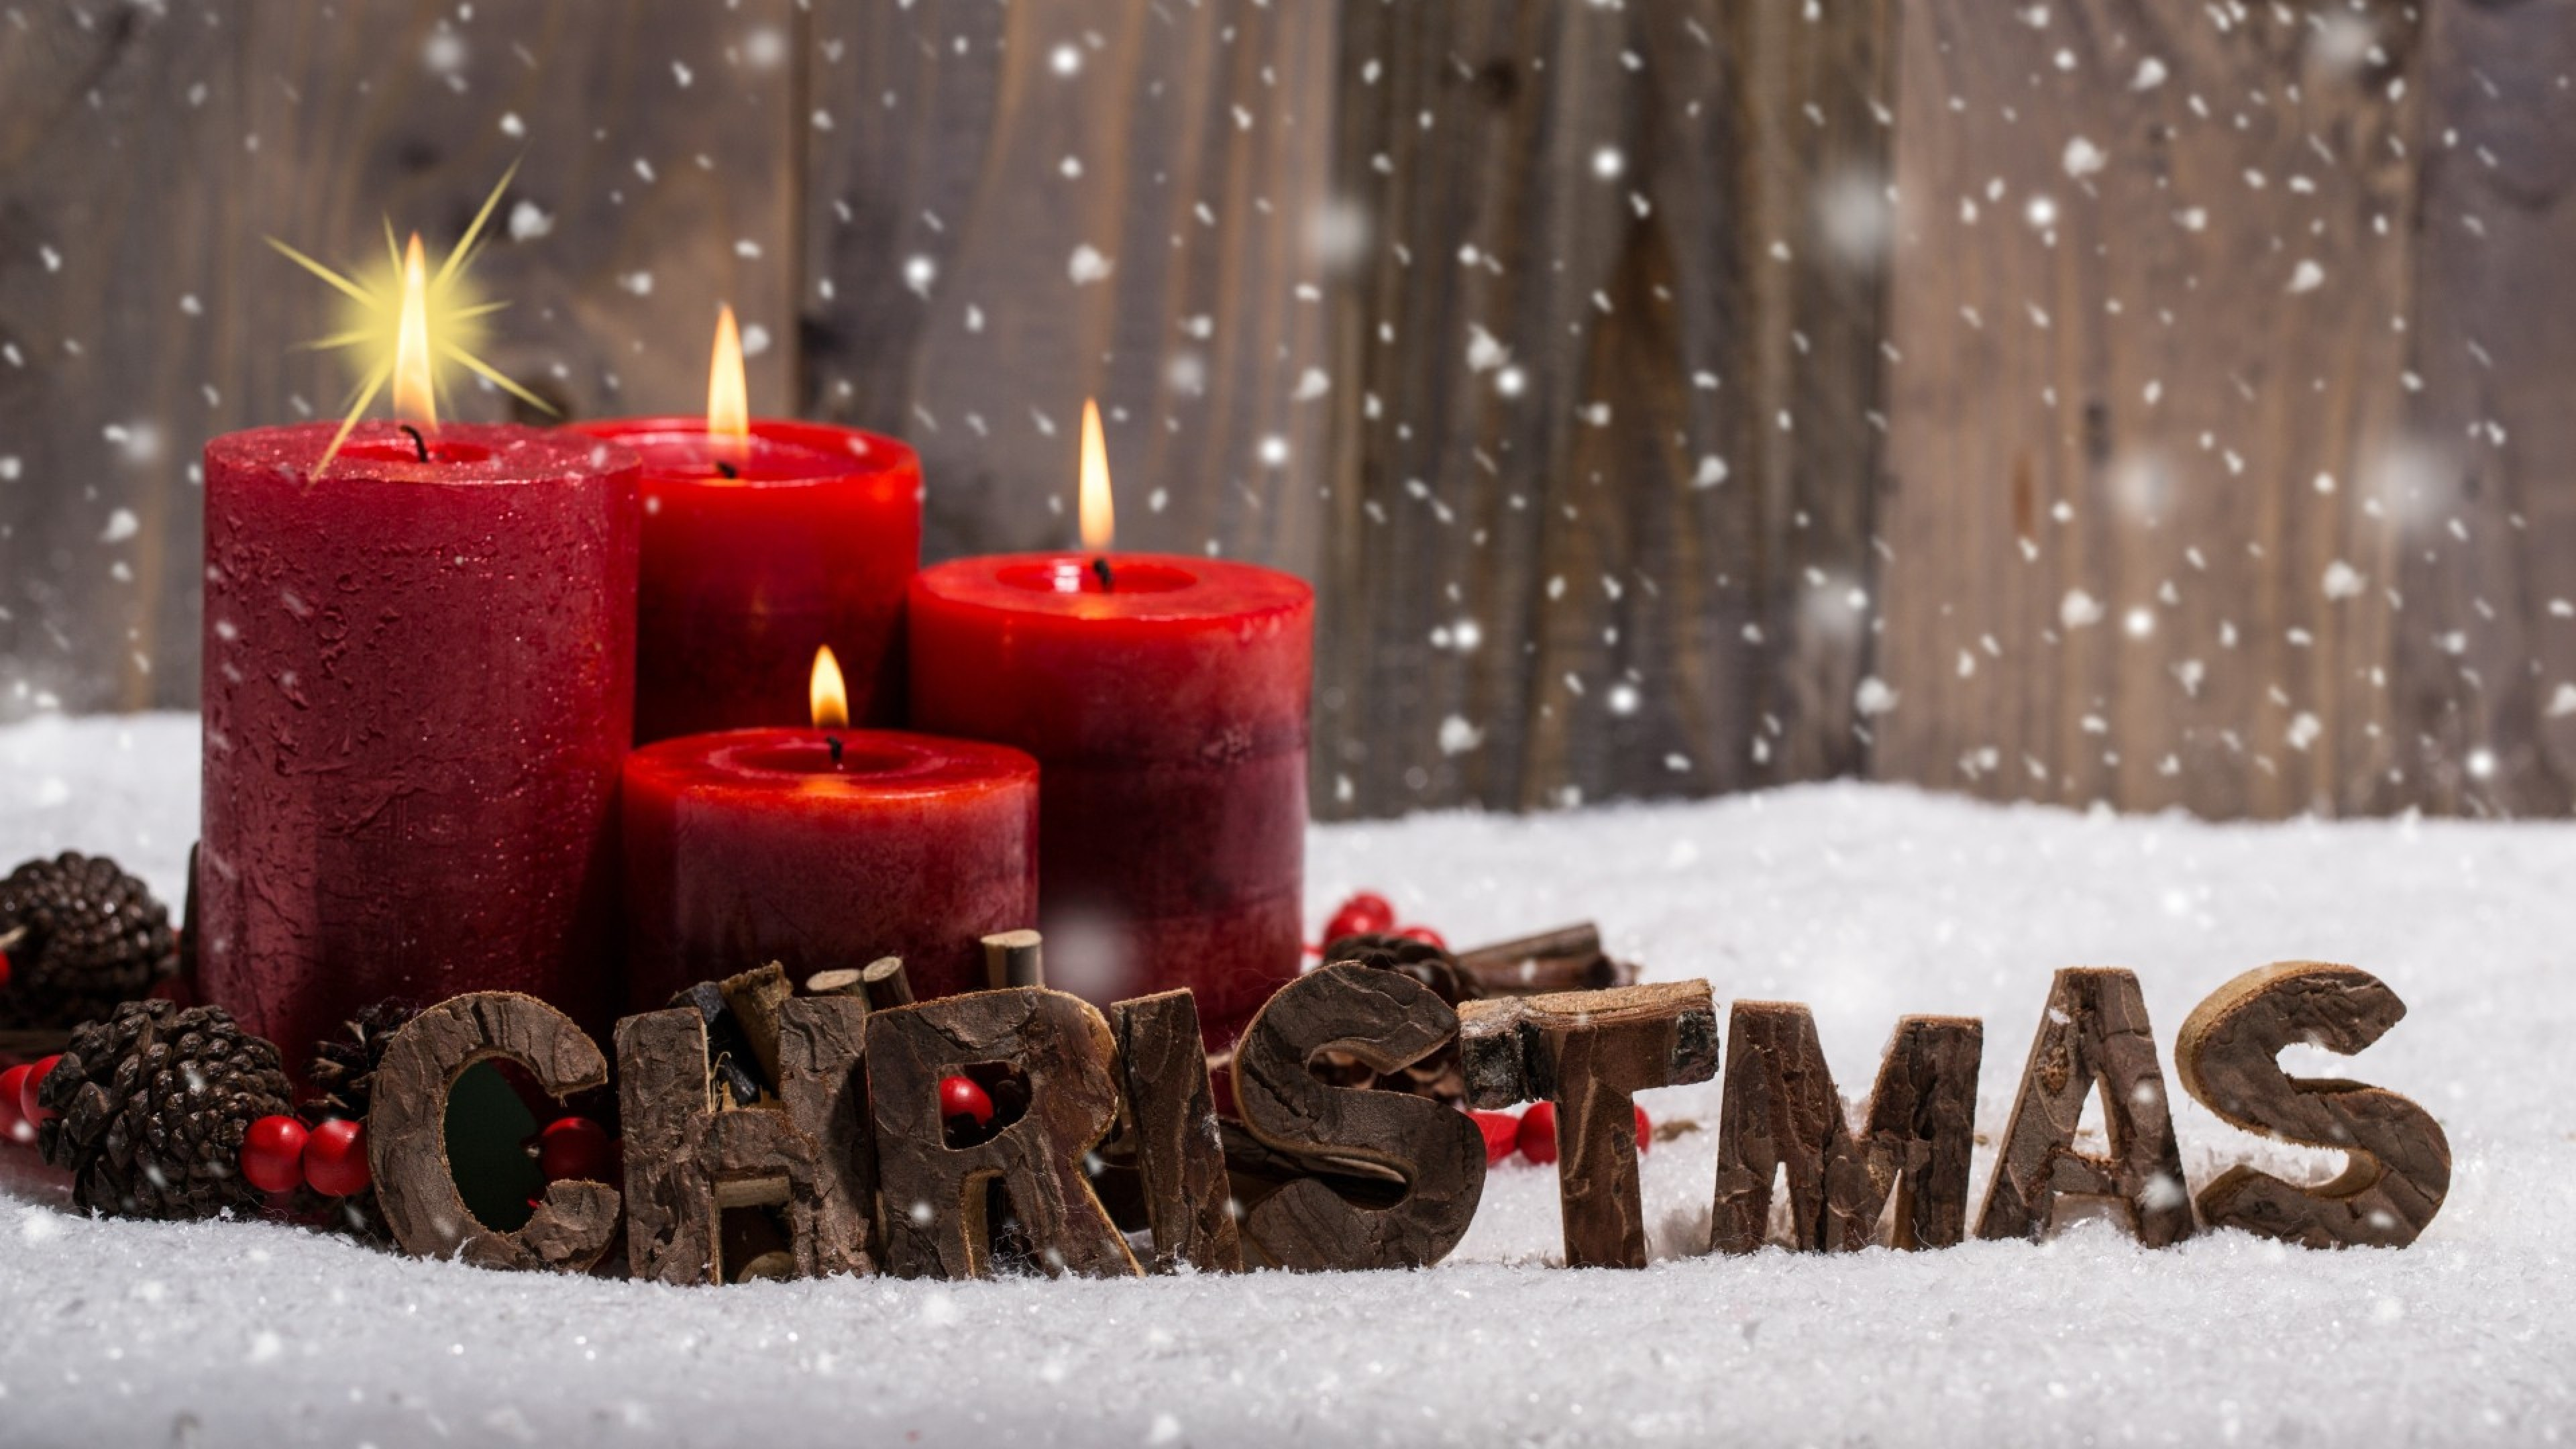 … Background 4K Ultra HD. Wallpaper christmas, candles, snow